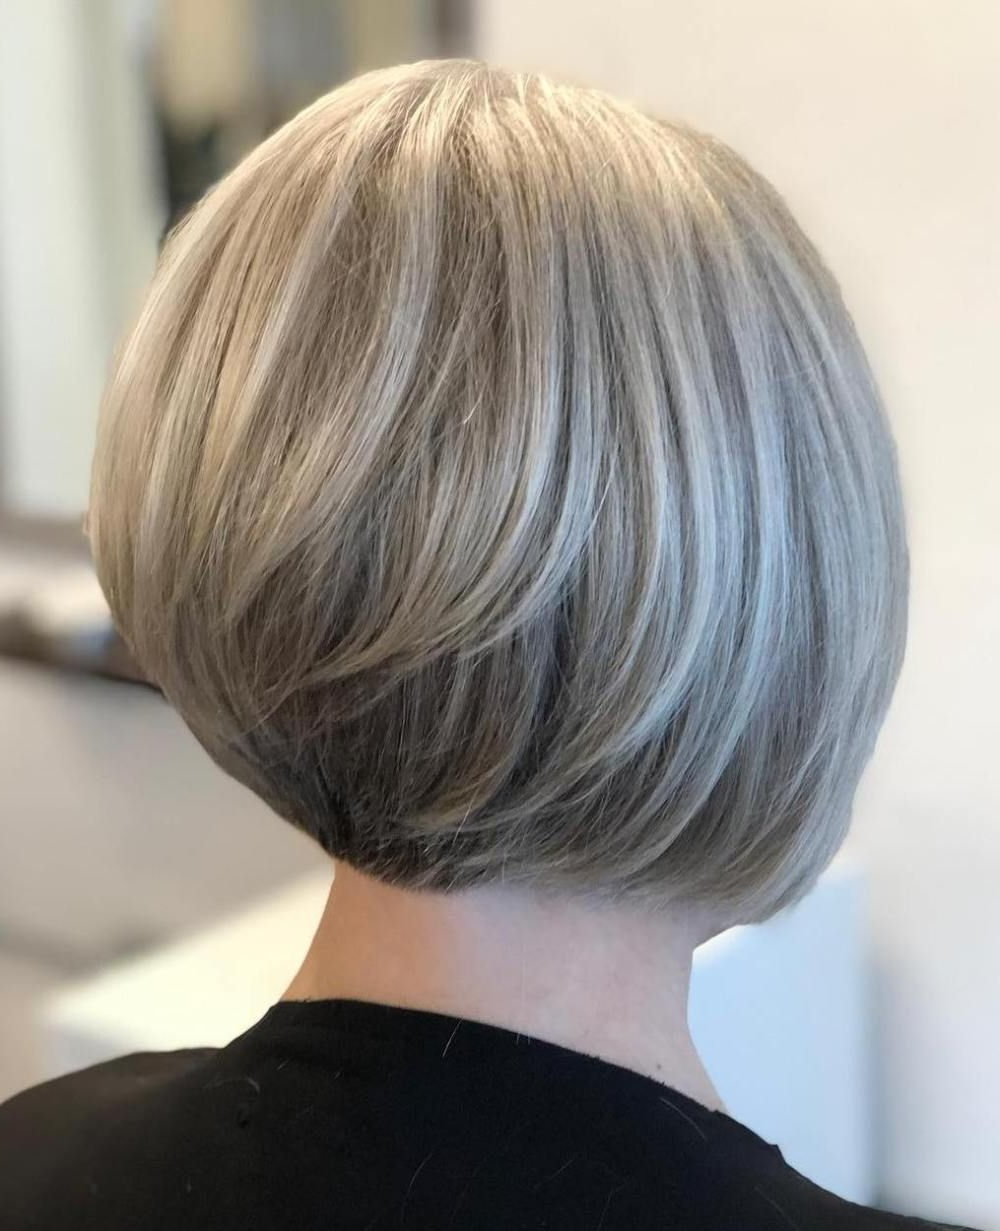 Current Jaw Length Short Bob Hairstyles For Fine Hair Regarding Pin On Hair And Beauty (View 7 of 20)